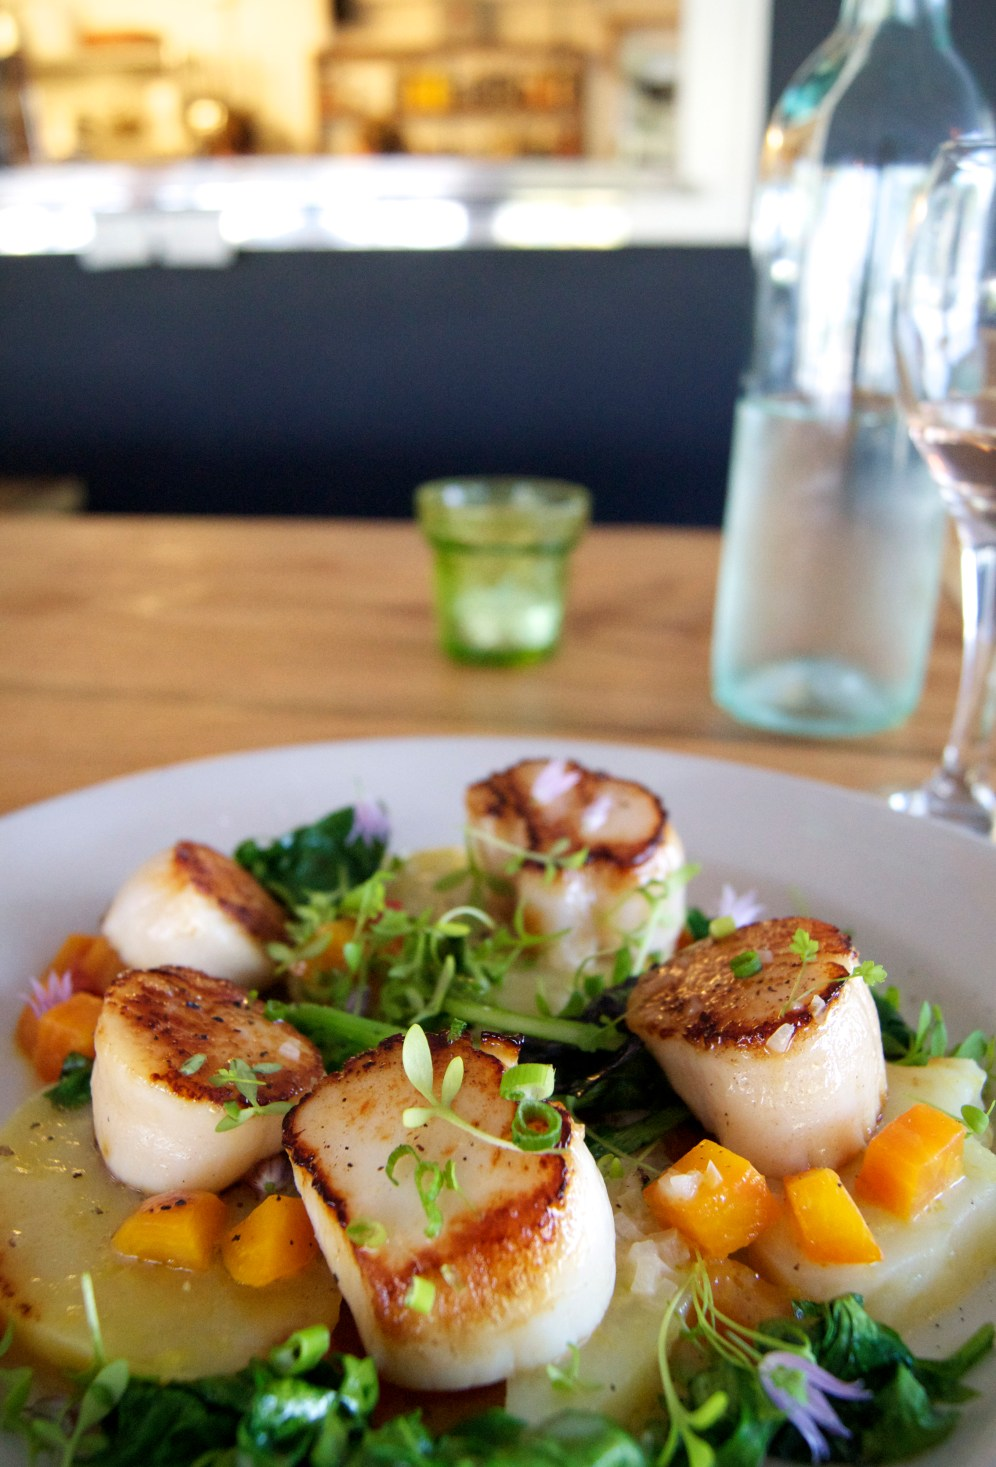 seared scallops with marinated potatoes, beets, and braised greens